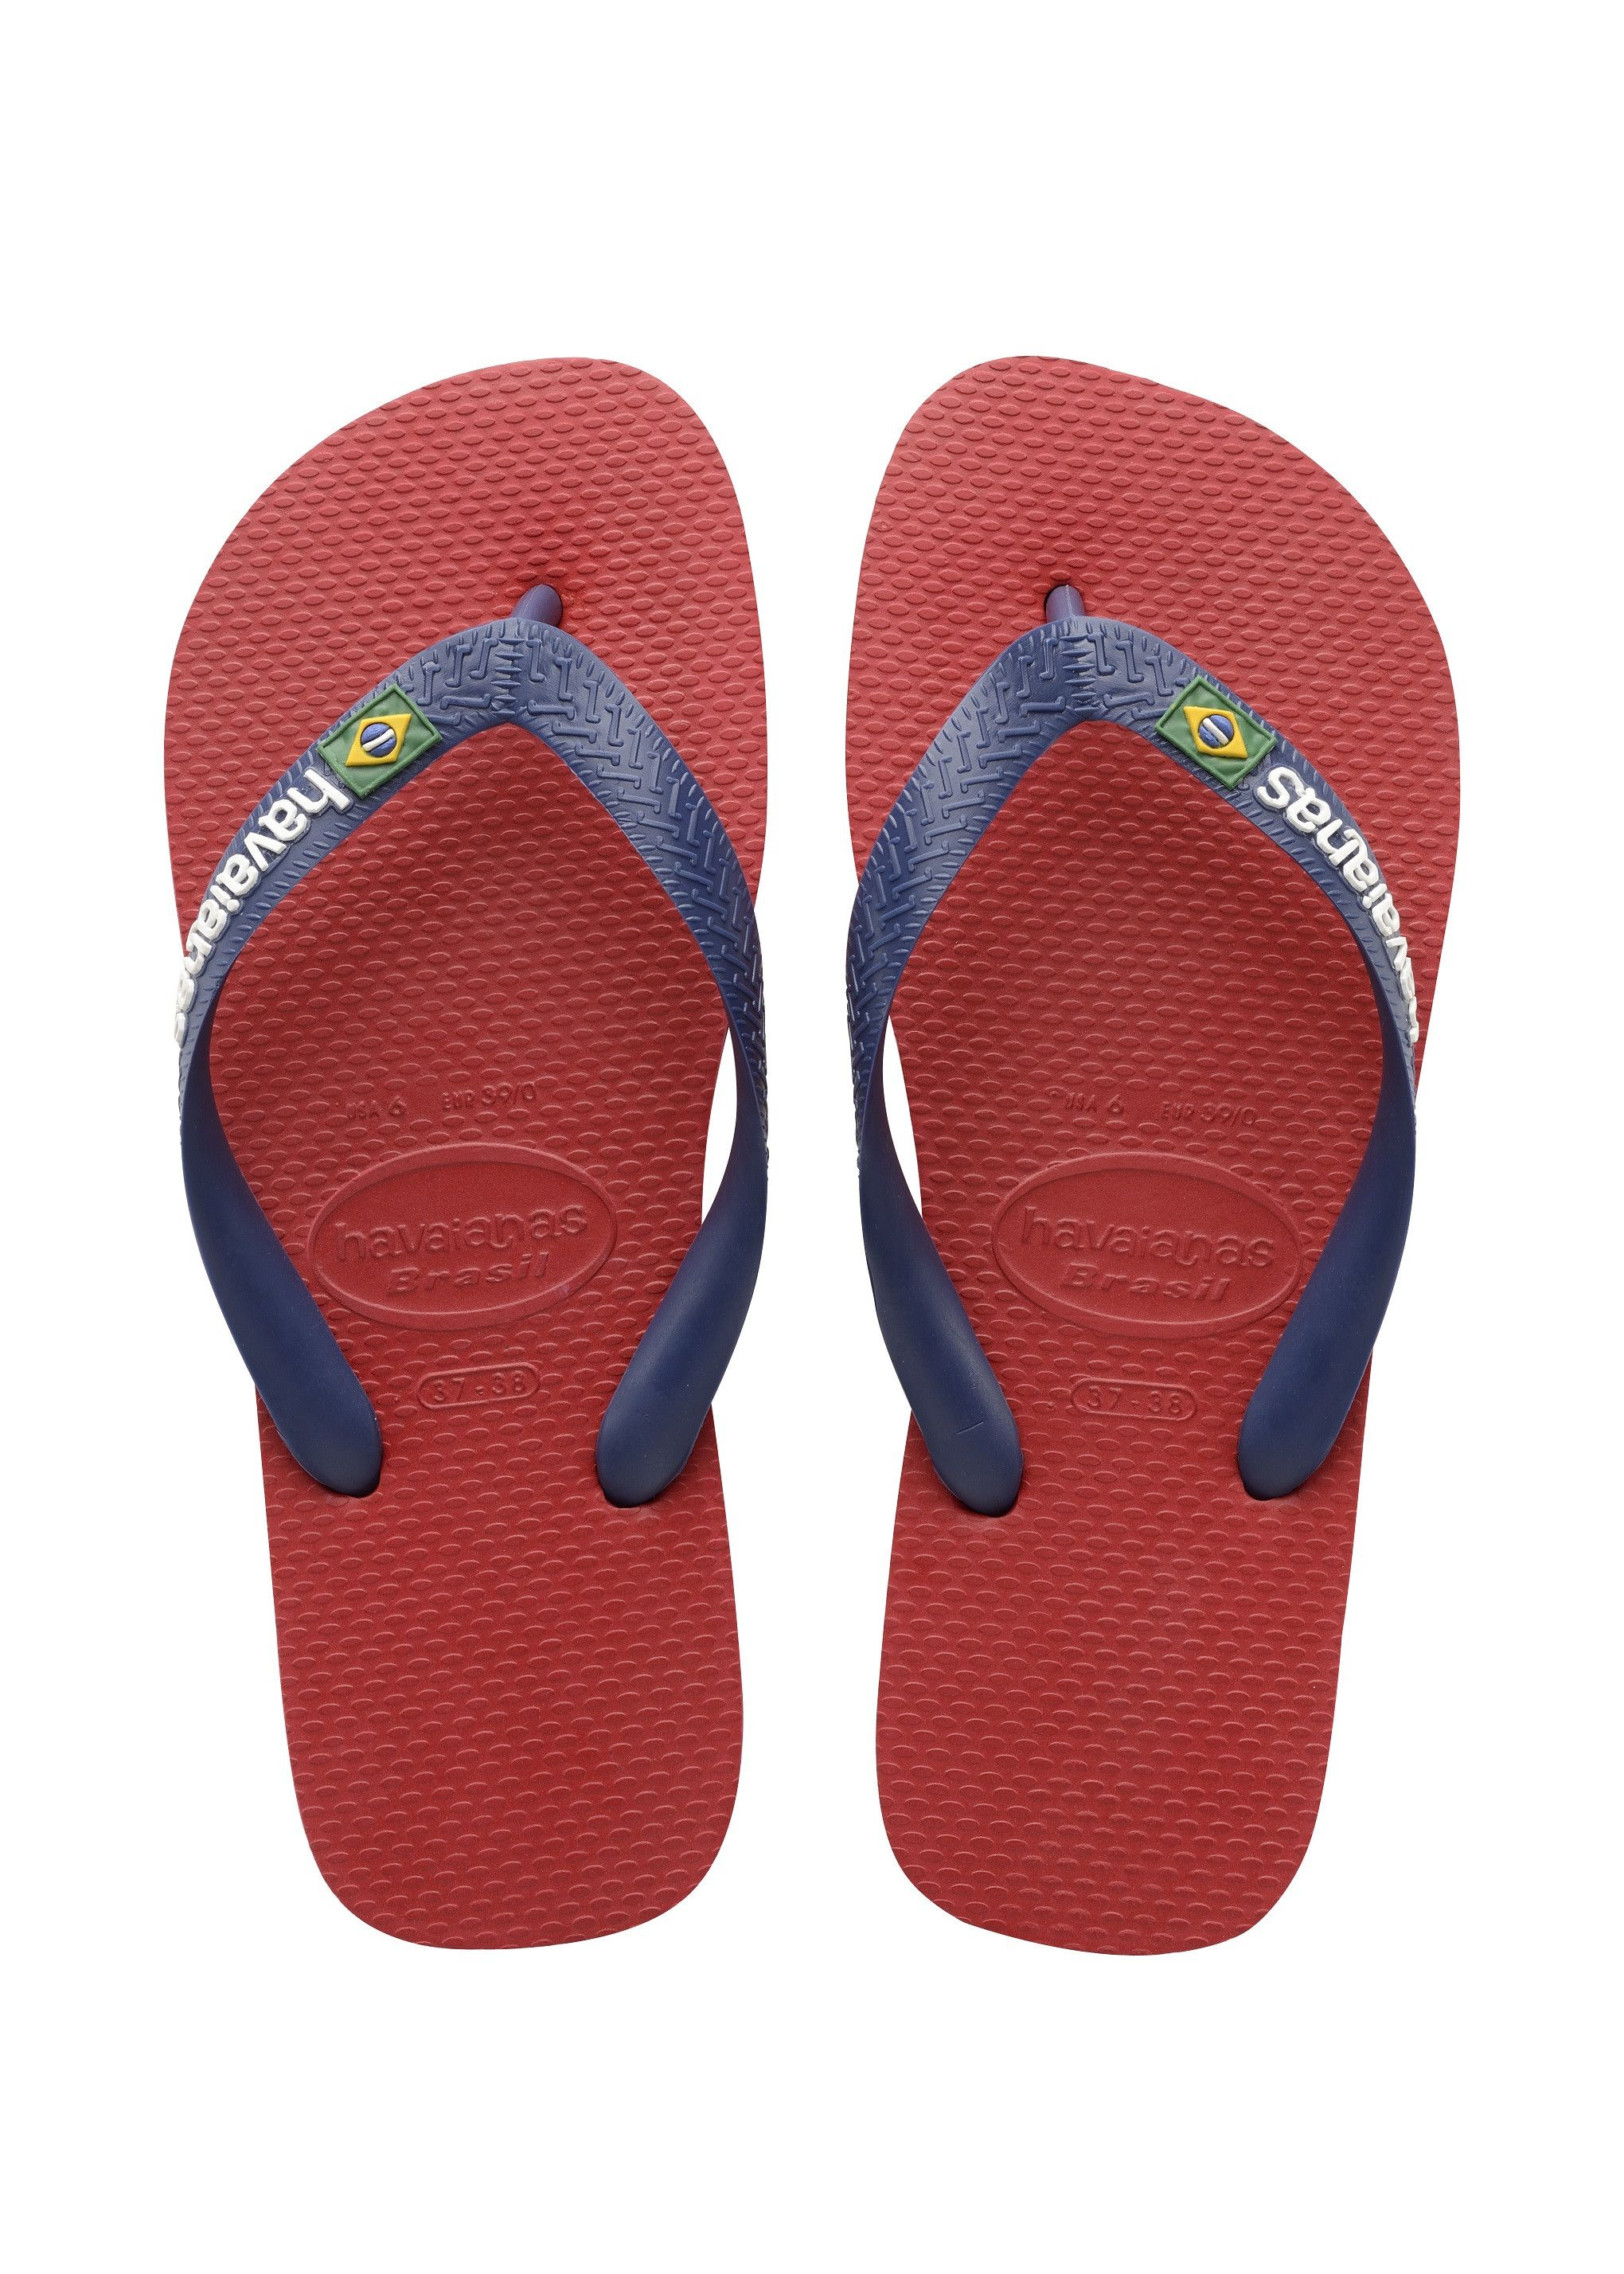 5445a02e9 Havaianas Brazil Logo Sandal Red Price From  £19.36